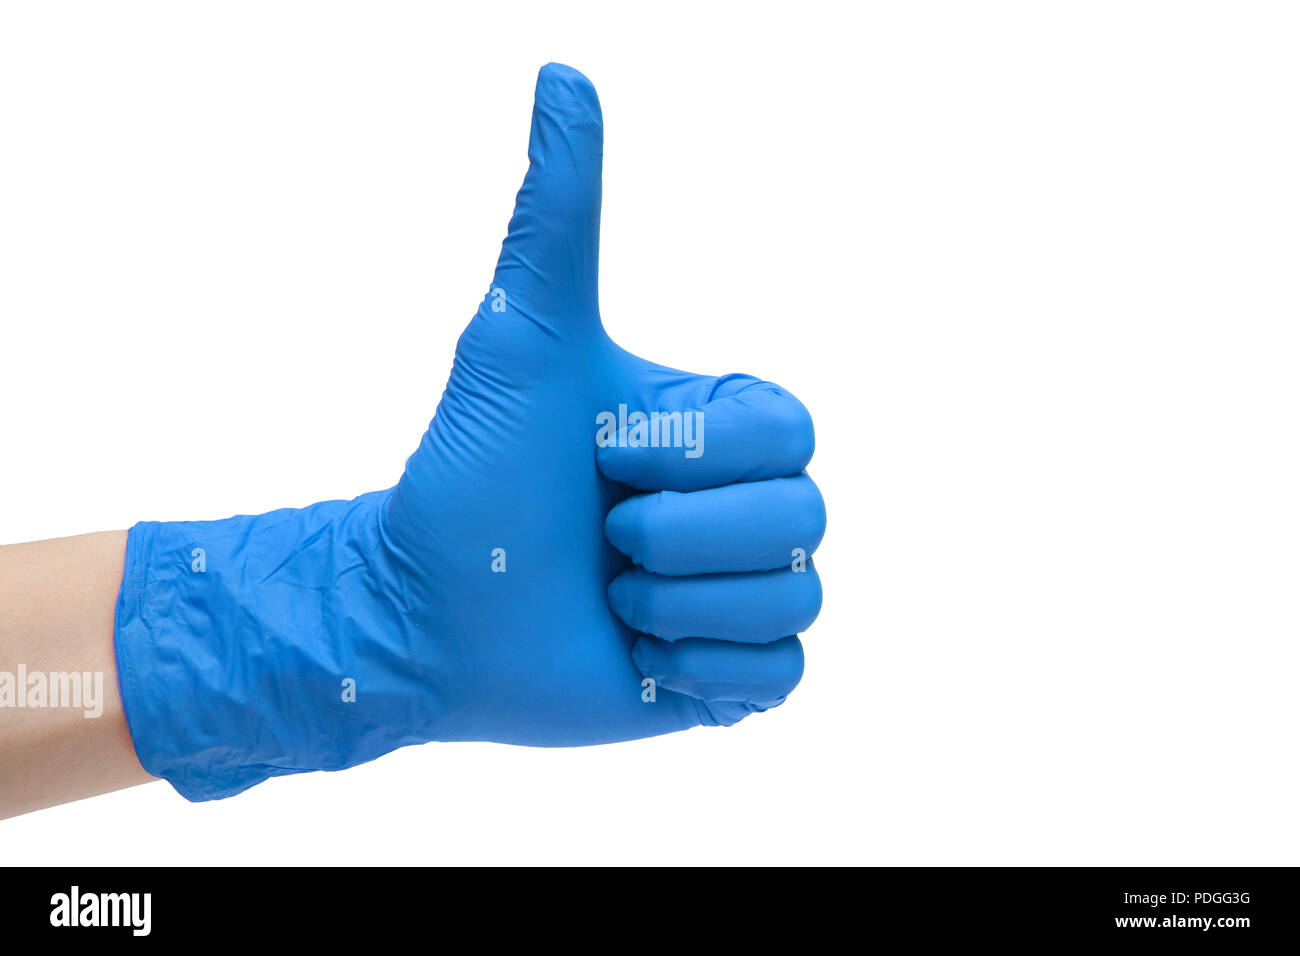 Like sign icon made of blue medical gloves. Hand finger up symbol. Thumbs up gesture. Isolated on white background - Stock Image